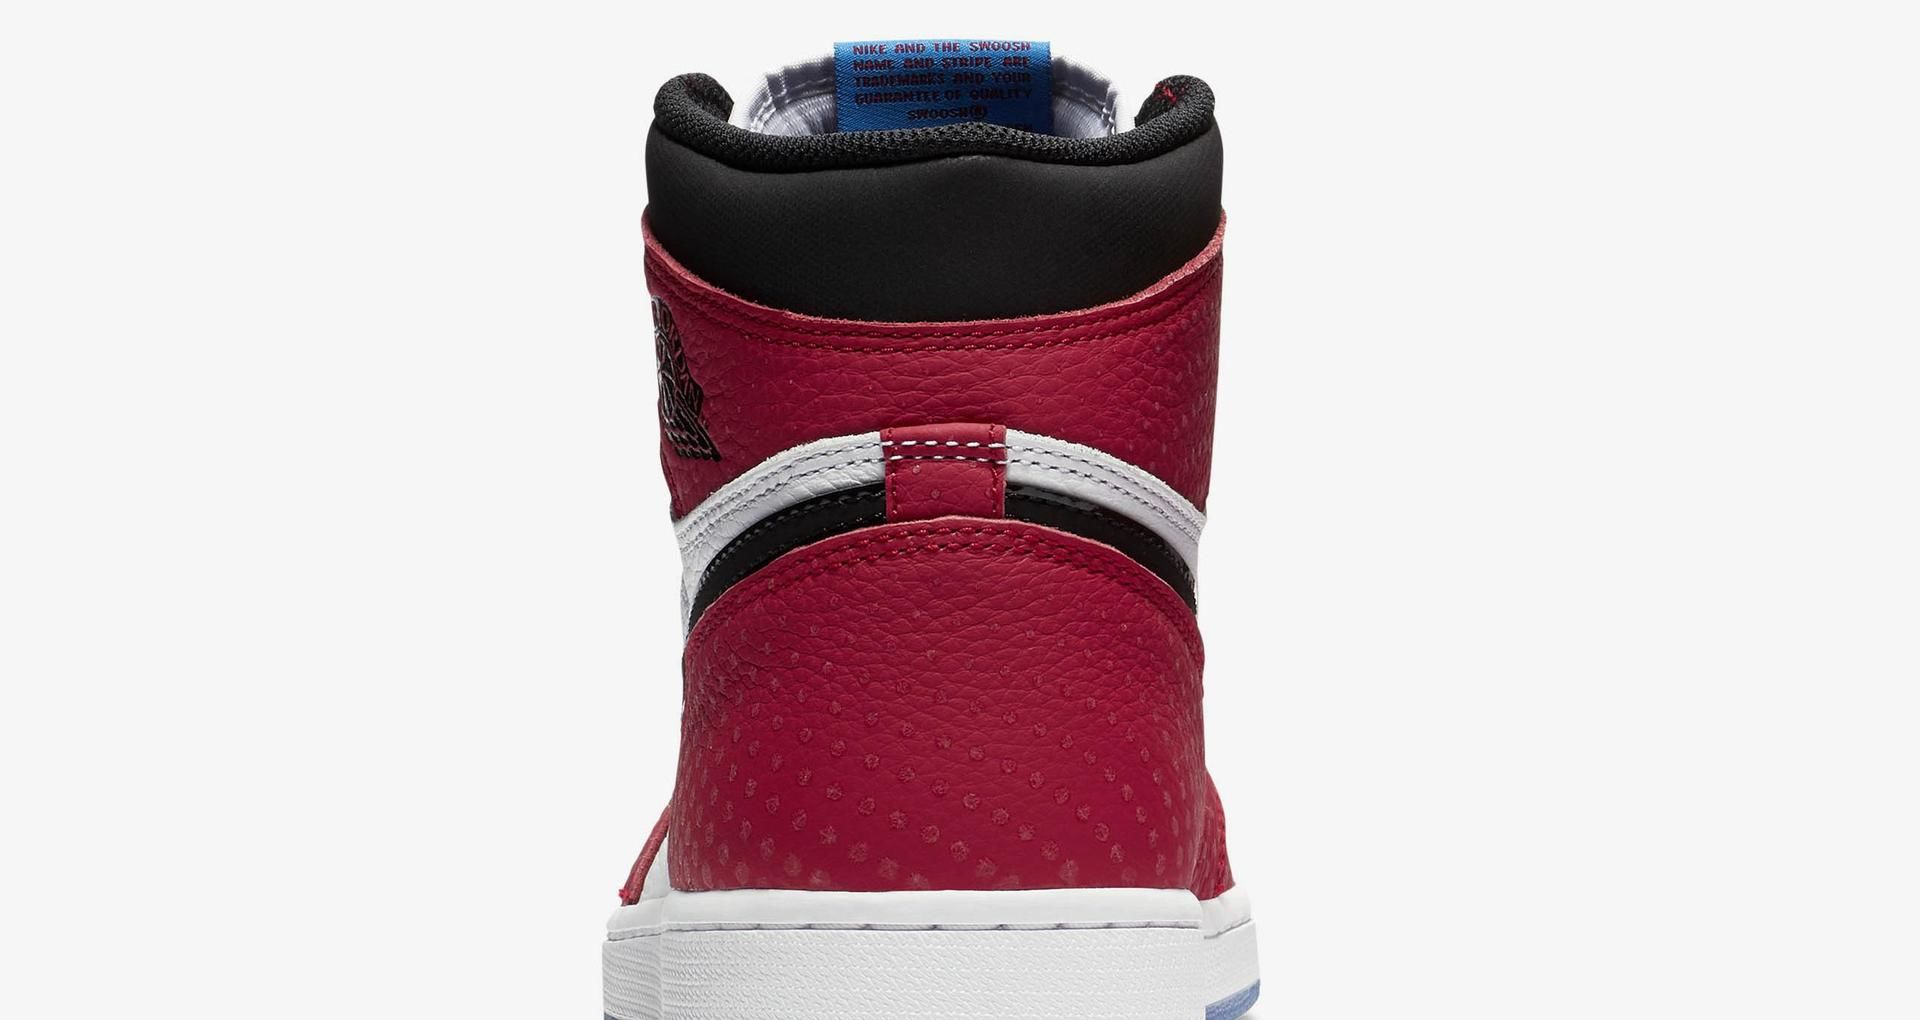 spider-man-nike-air-jordan-1-retro-high-og-origin-story-release-20181214